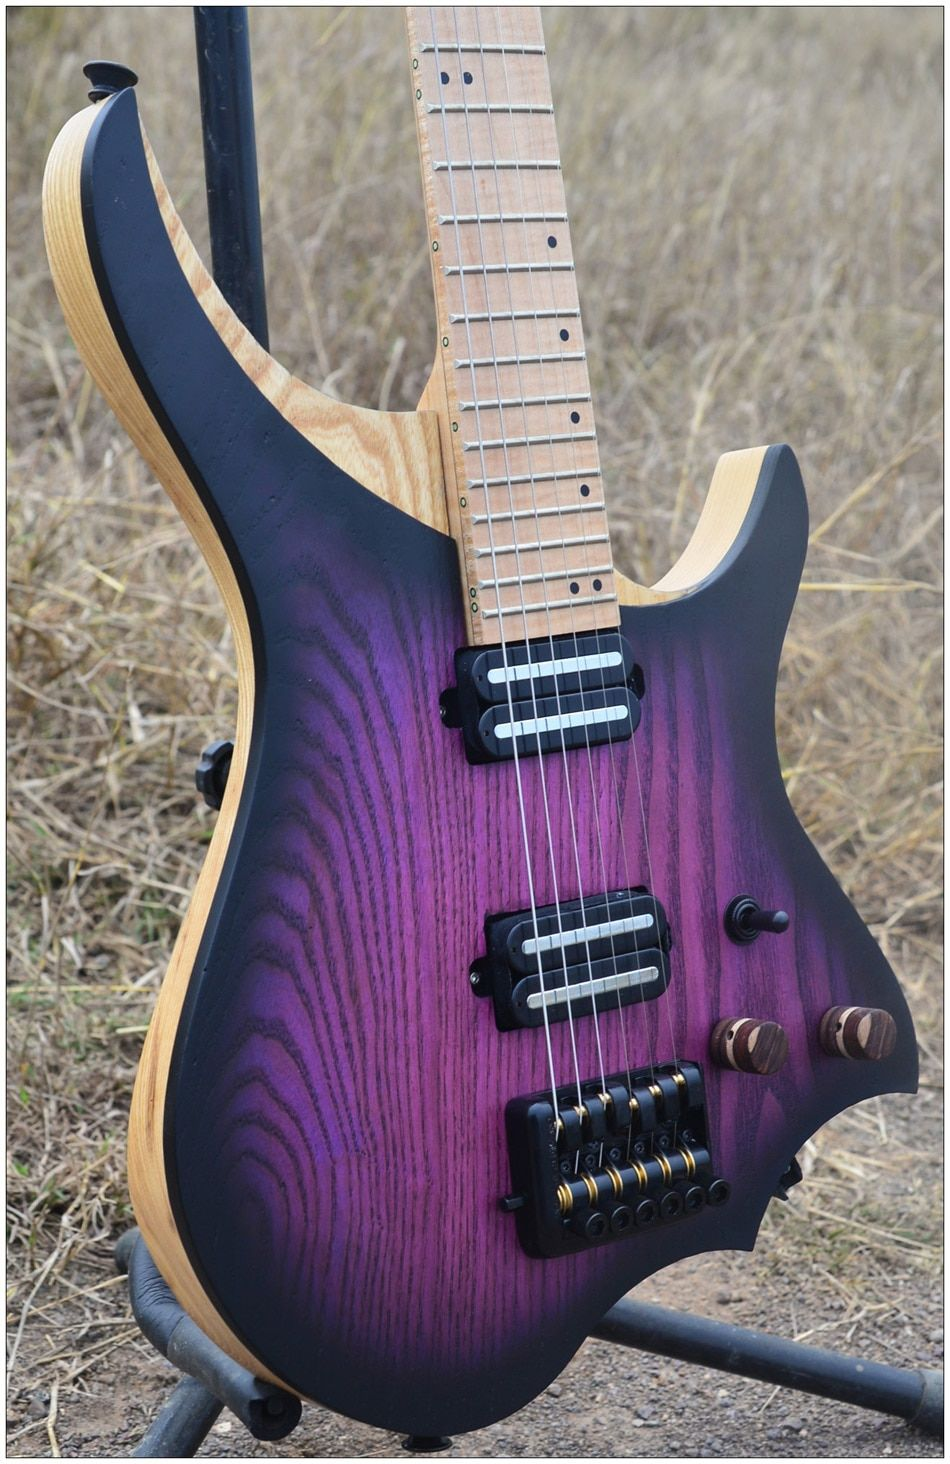 NK Headless Electric Guitar steinberger style Model Purple burst Color Flame maple Neck in stock Guitar free shipping